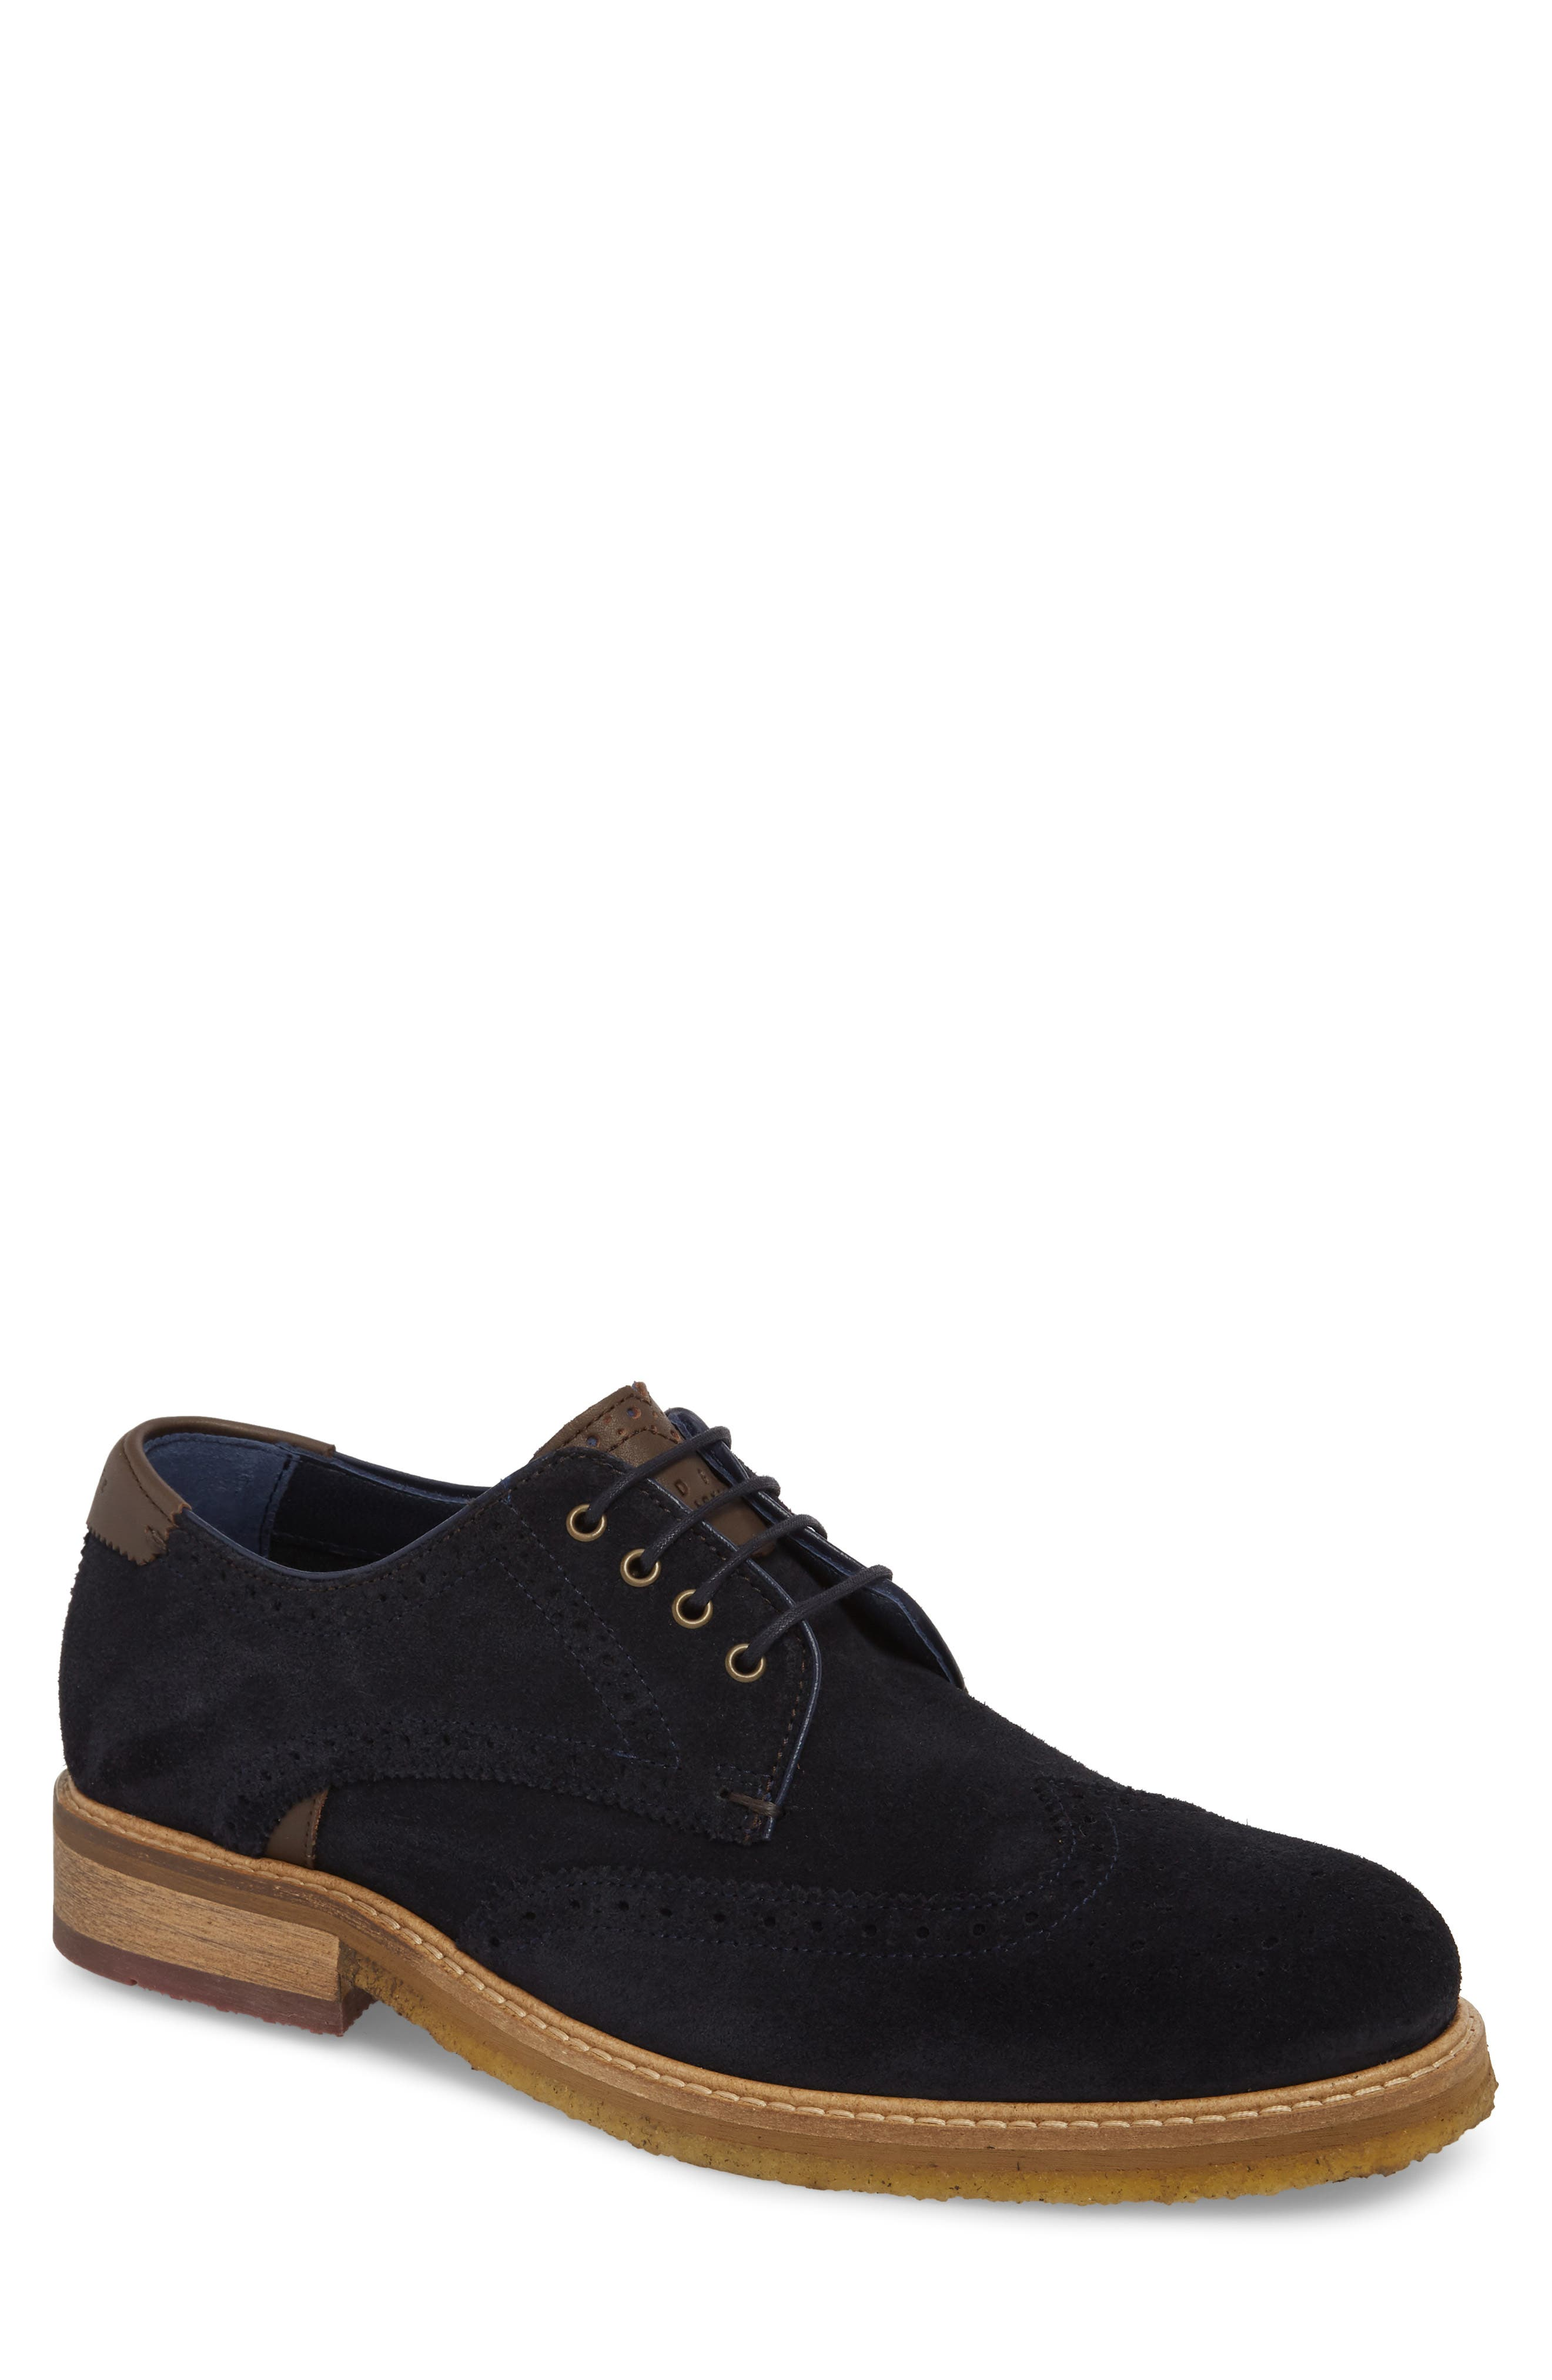 Ted Baker London Brycces Wingtip Oxford (Men)